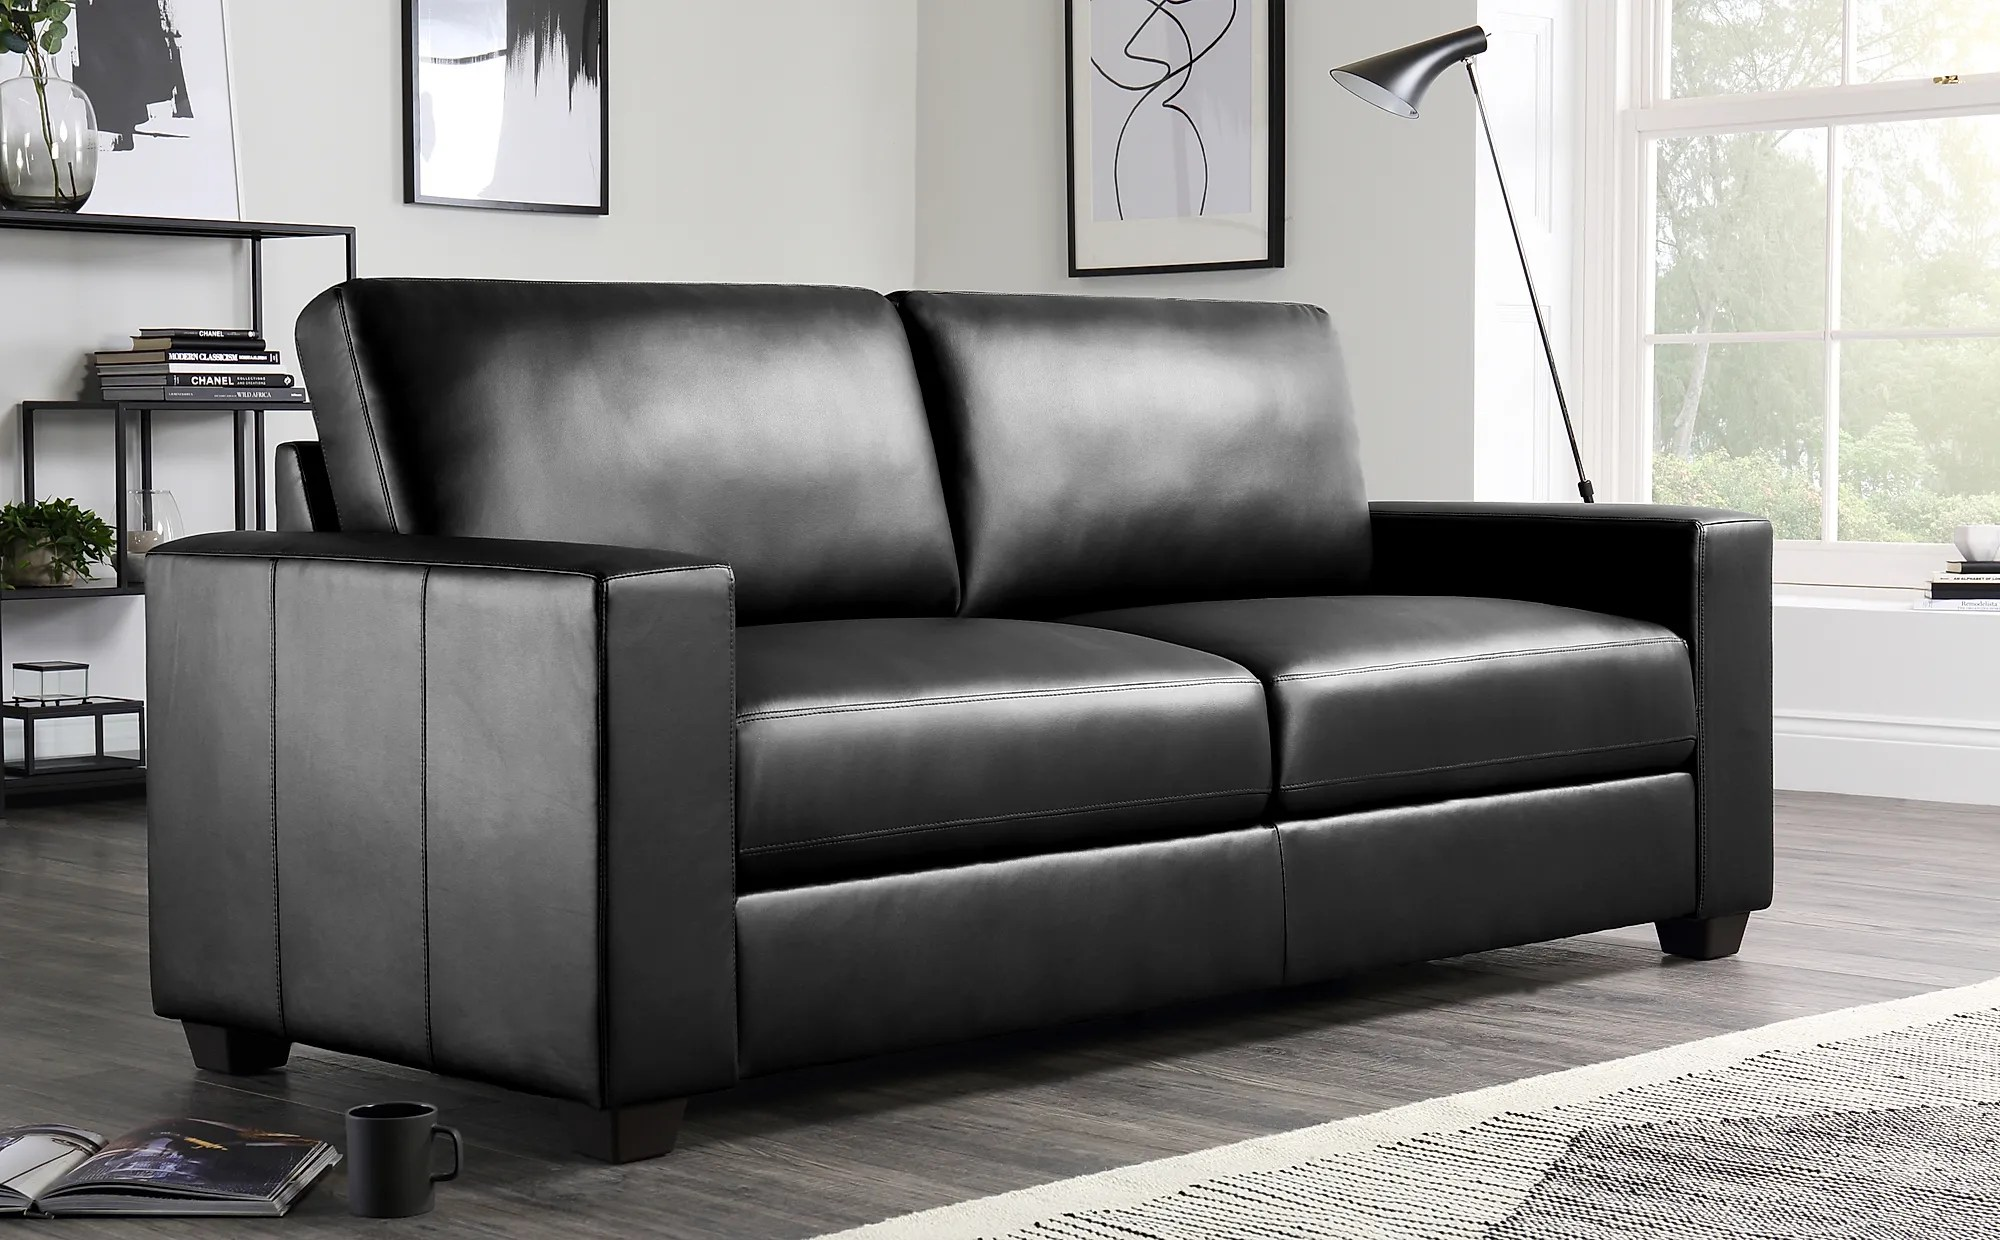 3 seater sofa black leather outdoor glider replacement cushions mission only 399 99 furniture choice gallery